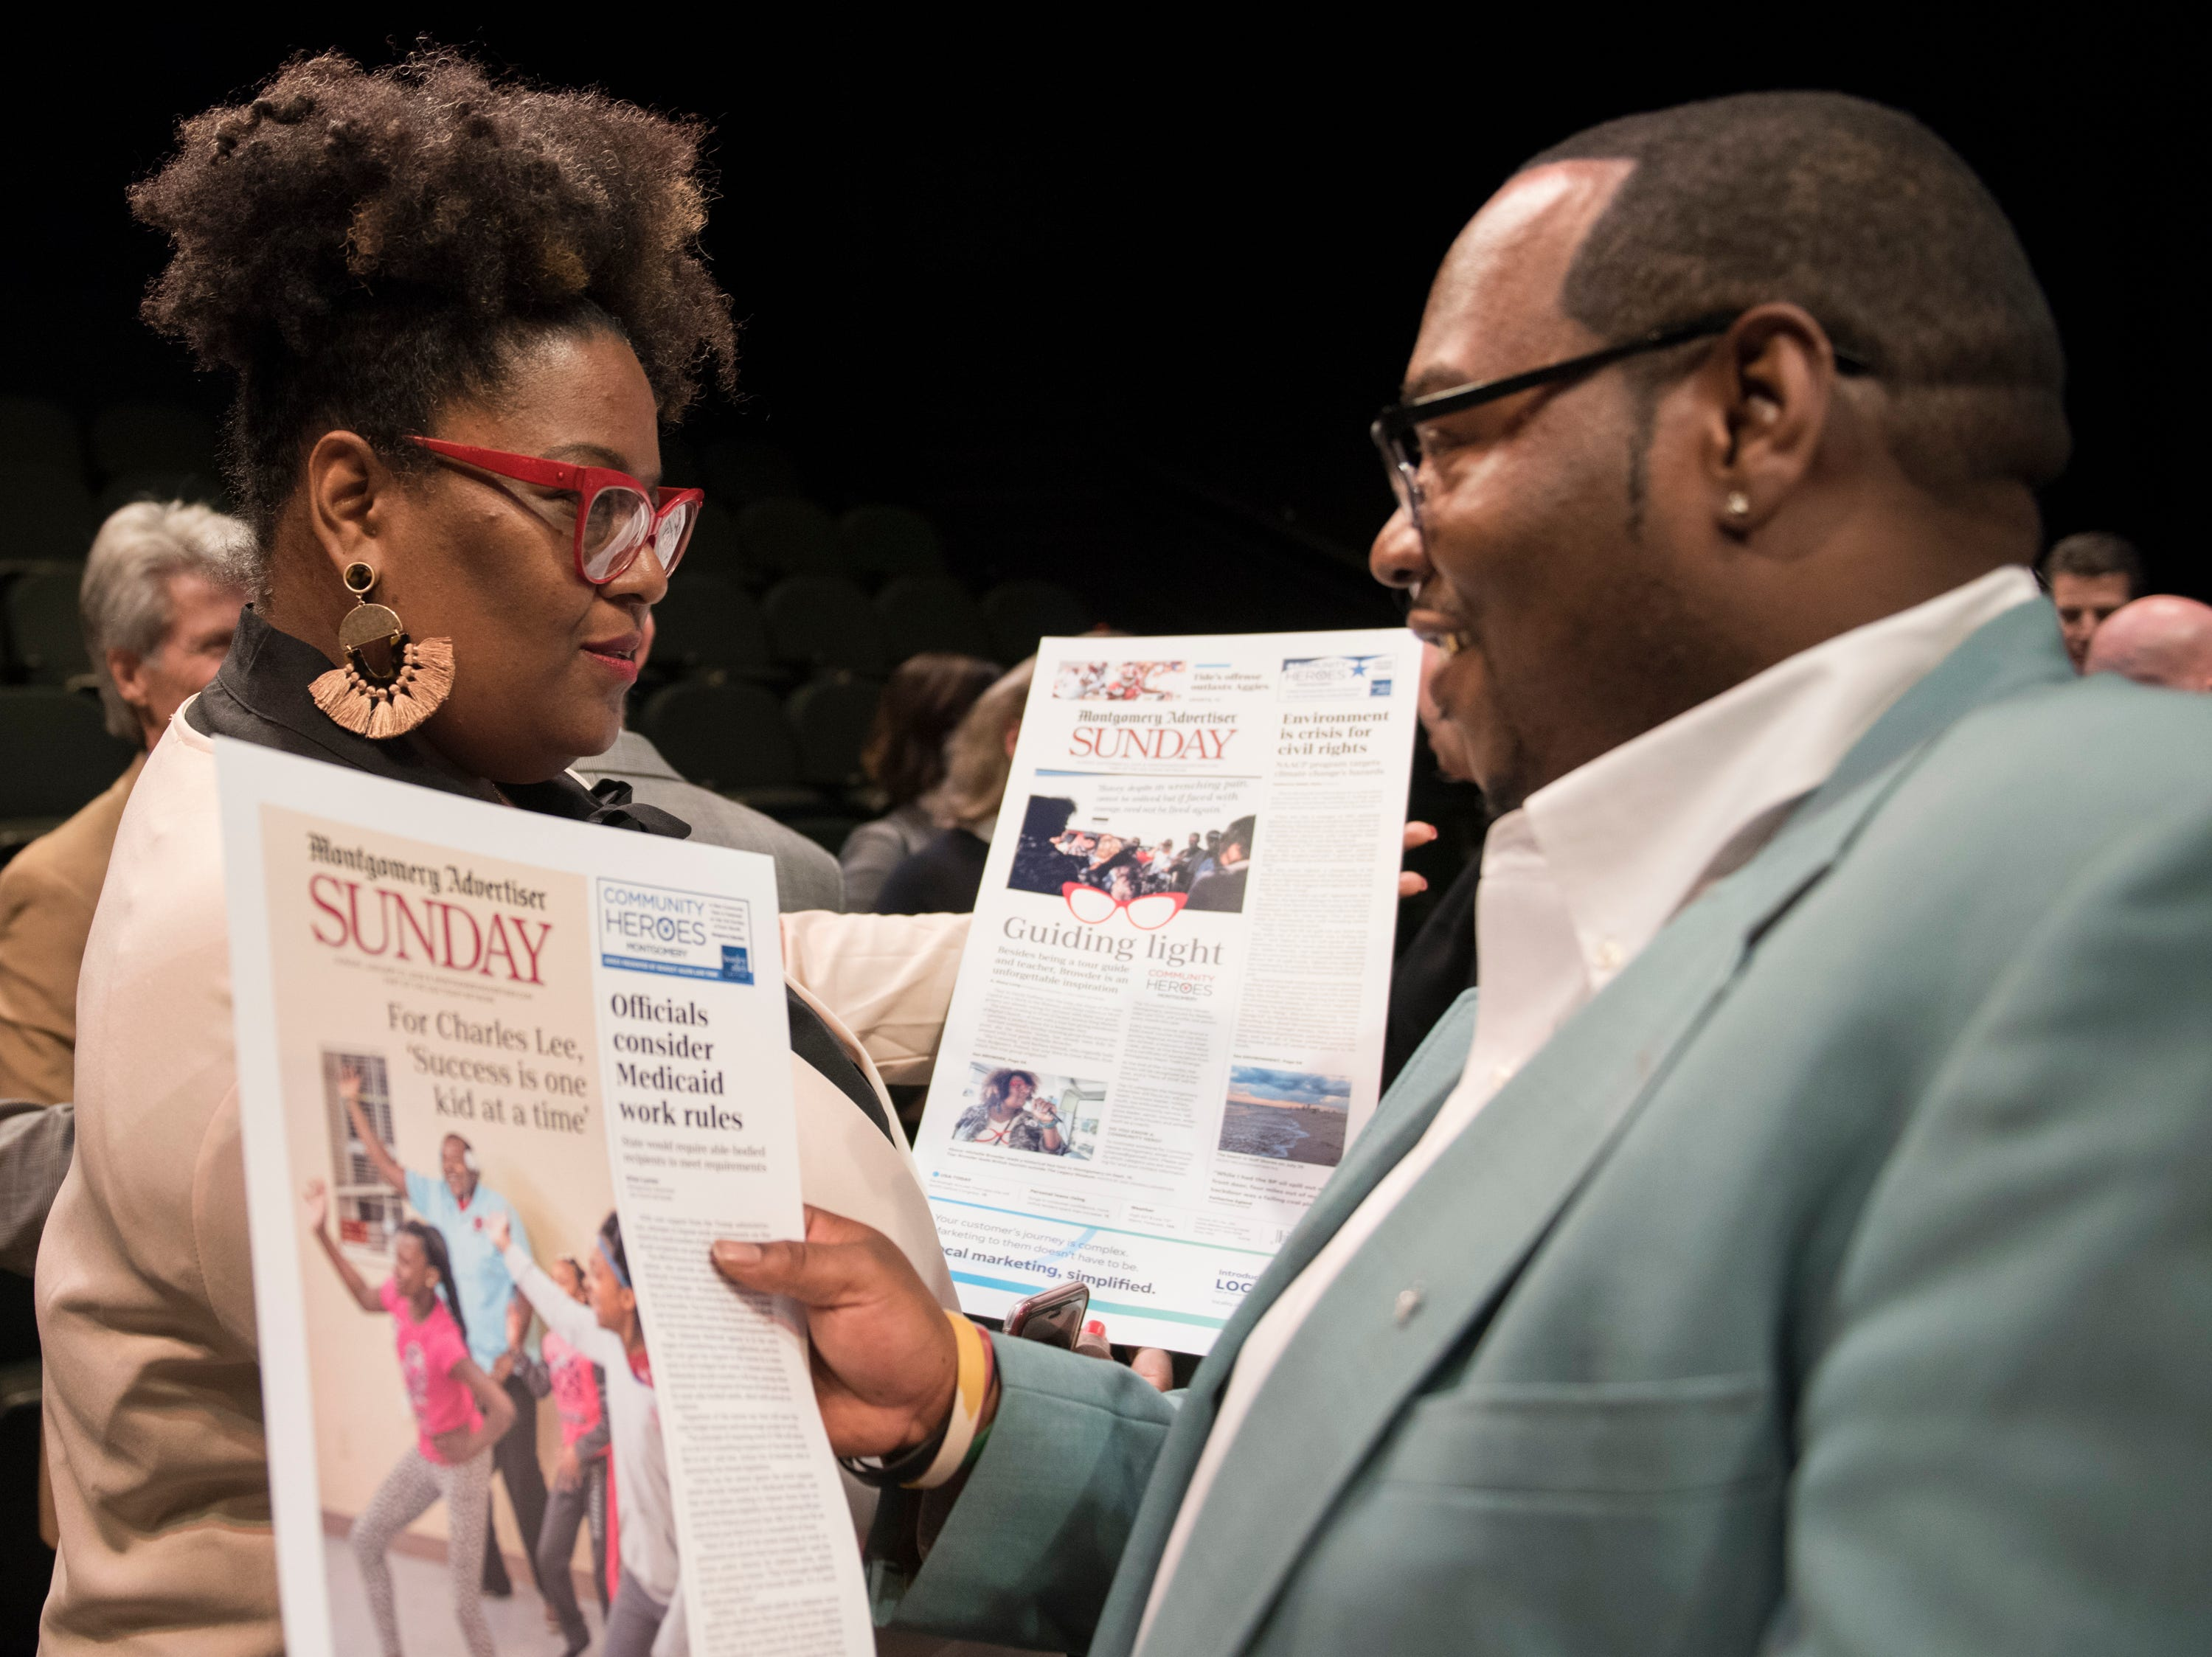 Community Heroes Michelle Browder and Charles Lee speak during the Community Heroes awards ceremony at Alabama Shakespeare Festival in Montgomery, Ala., on Tuesday, Jan. 8, 2019.